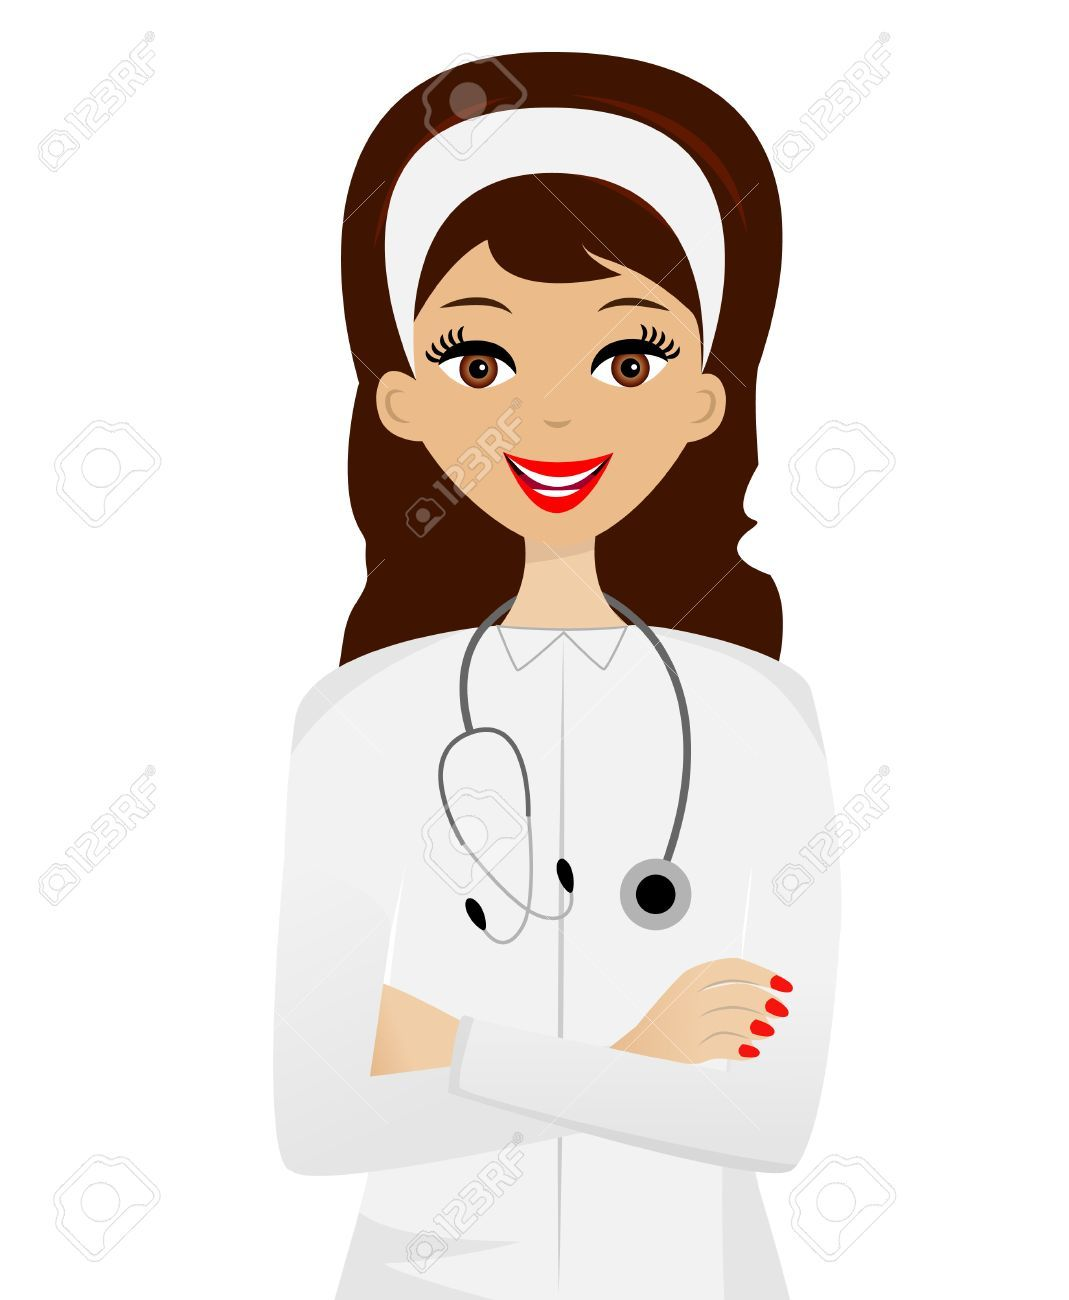 Clipart doctor lady doctor. Woman google search dream